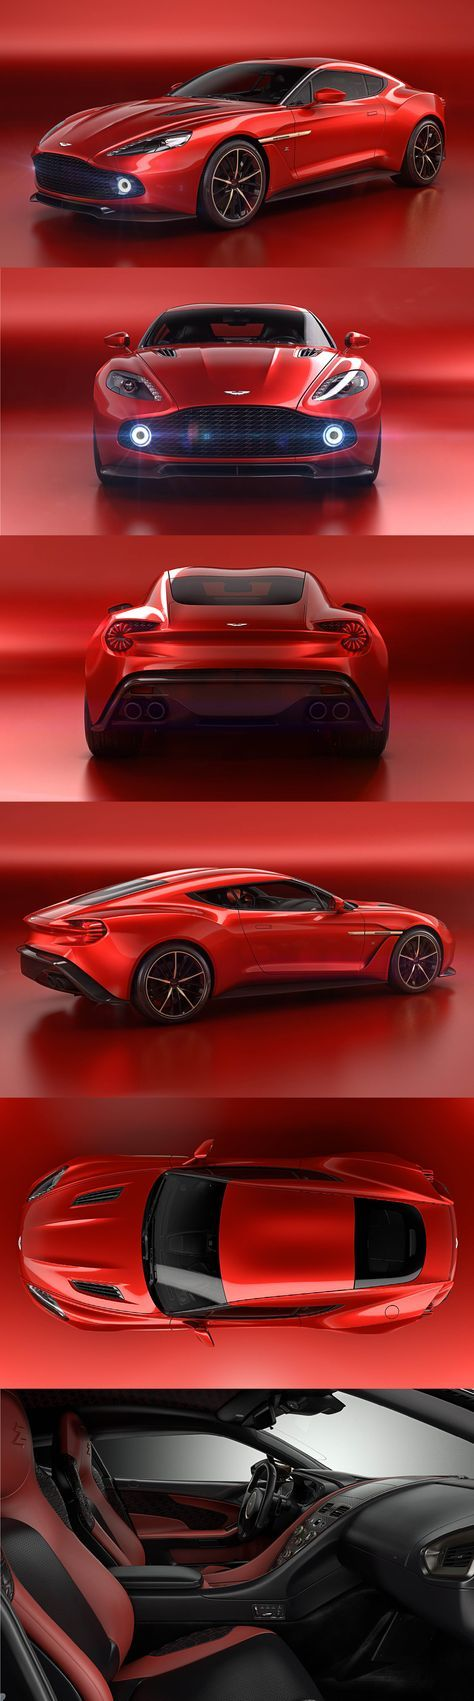 The New Aston Martin Vanquish Zagato Concept Is Painfully Gorgeous | Zagato and Aston Martin team up for a sumptuous concept based on the Vanquish Adrian din Arad